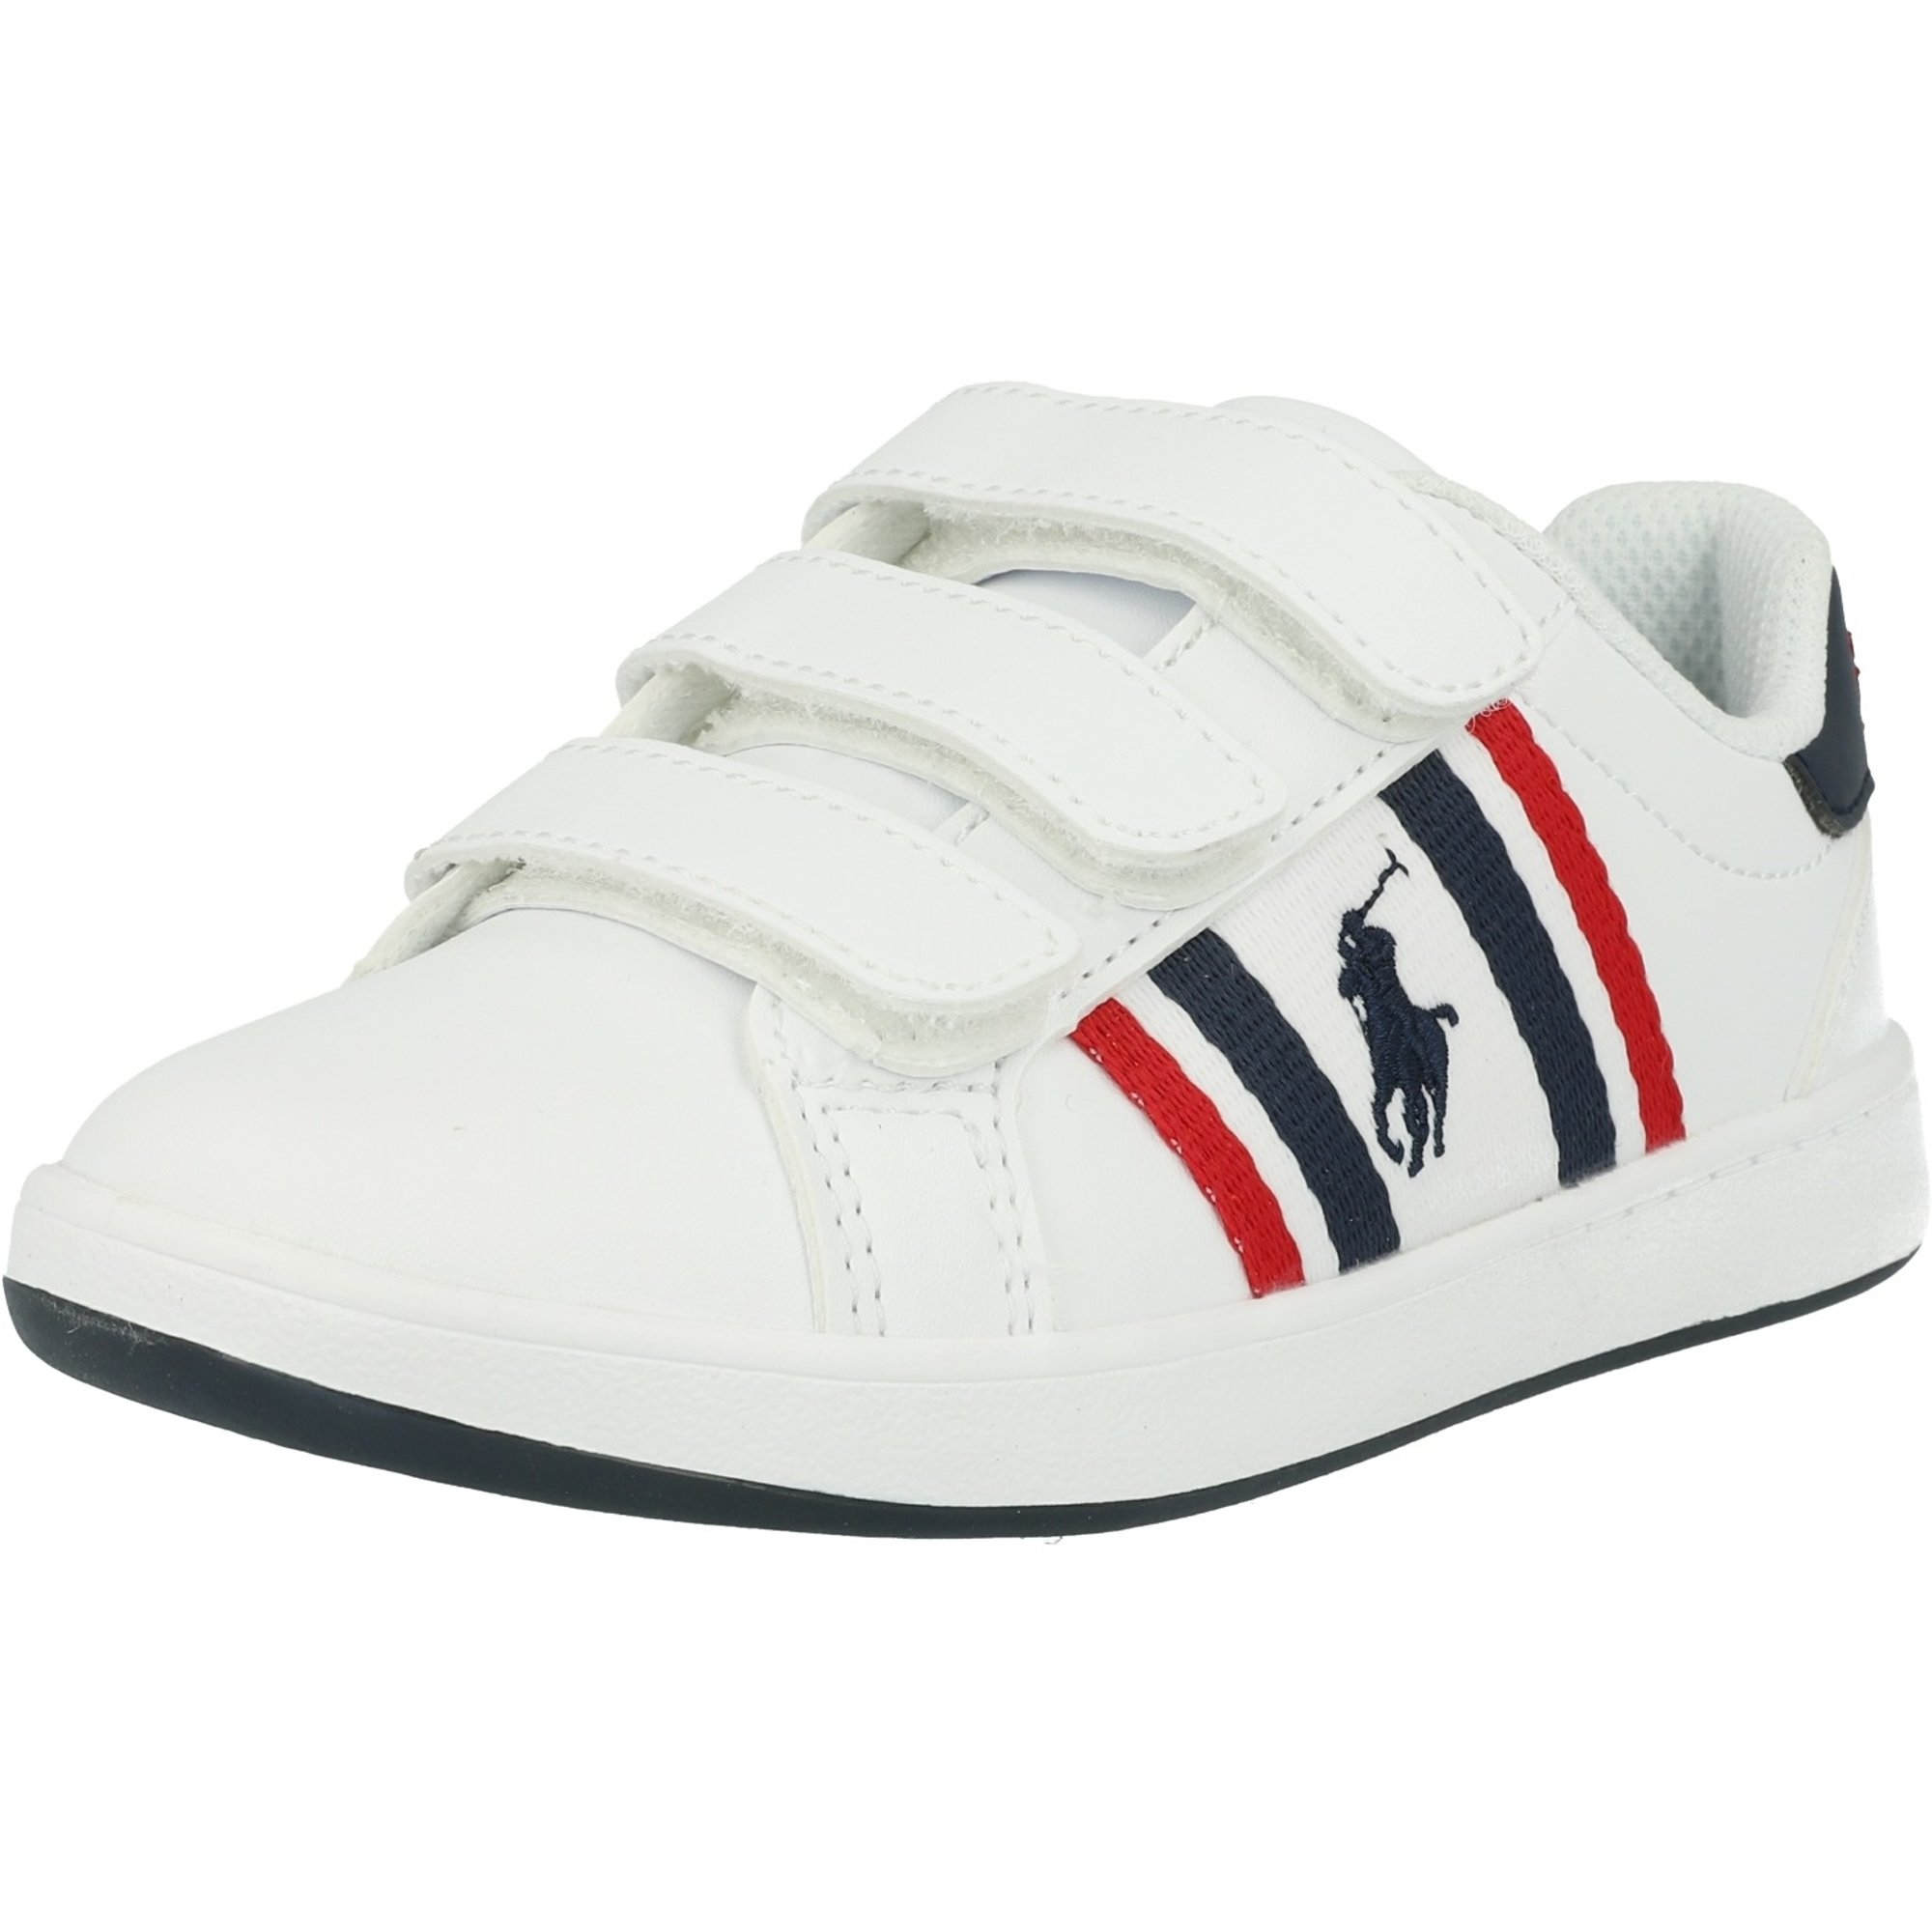 Polo Ralph Lauren Oaklynn EZ C White/Navy Smooth